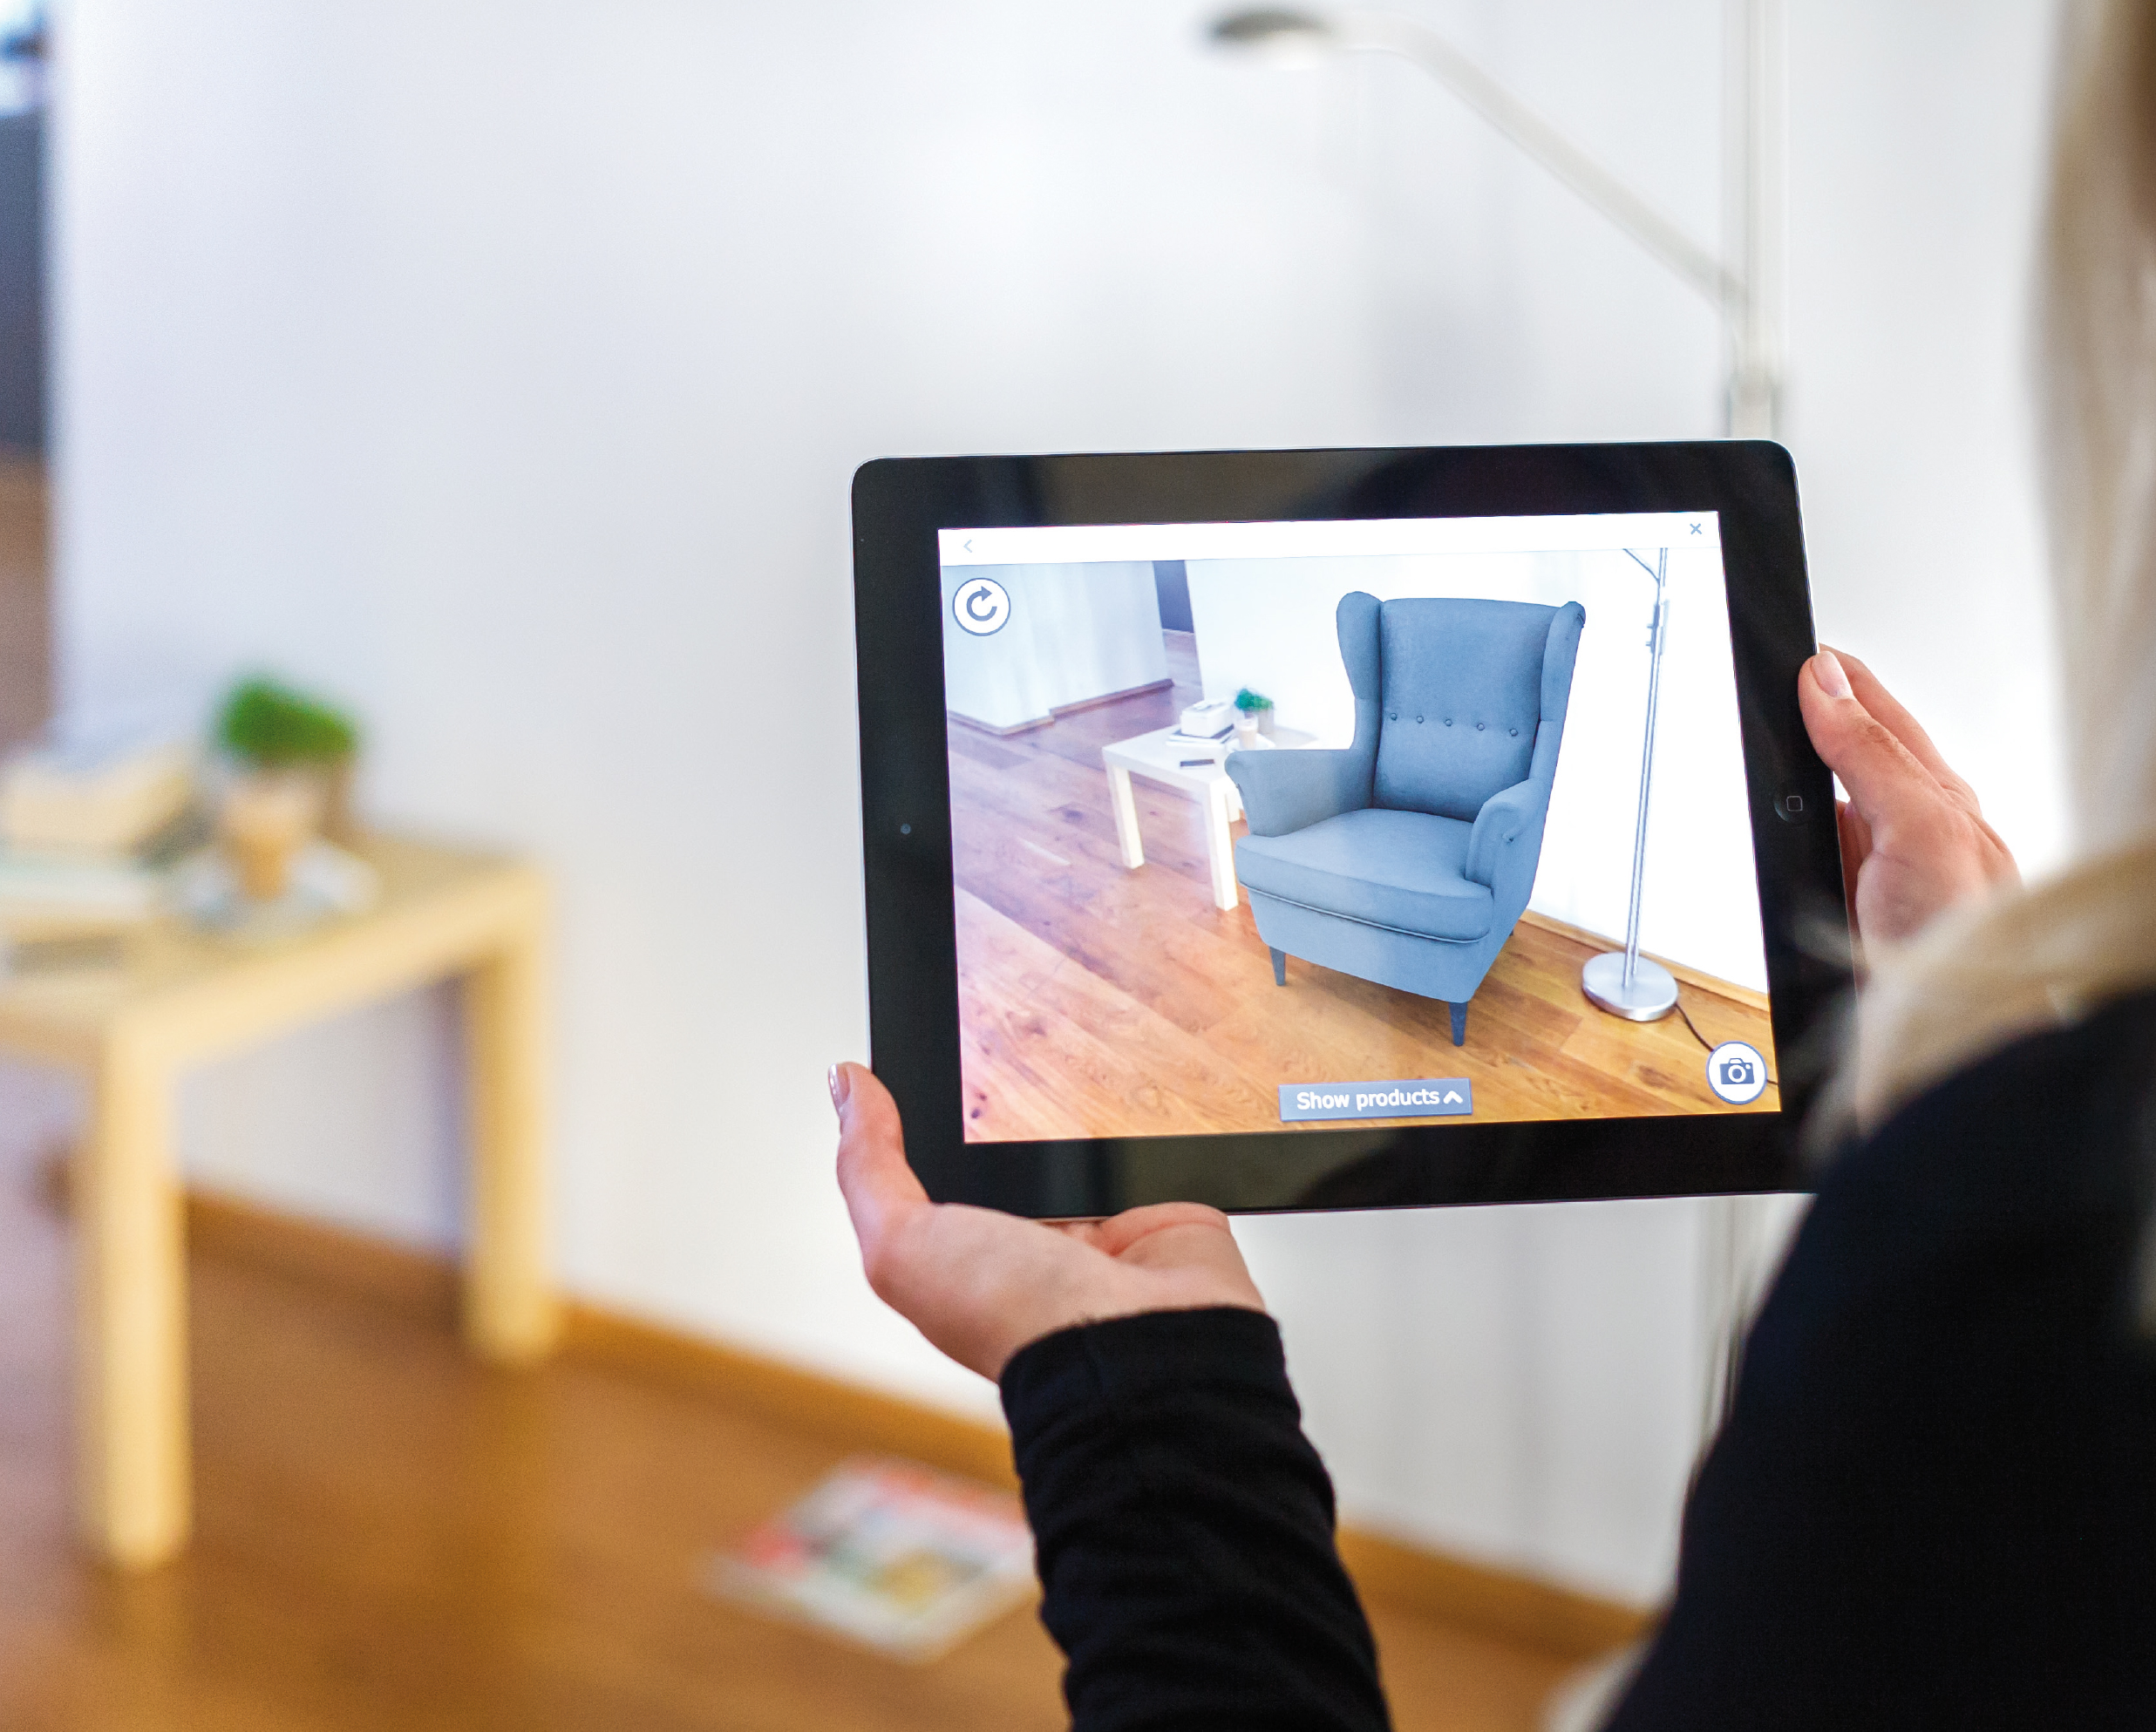 A superimposition-based AR app showing an armchair in its view of a room. In the background behind the tablet, one can see that there is no armchair in that spot